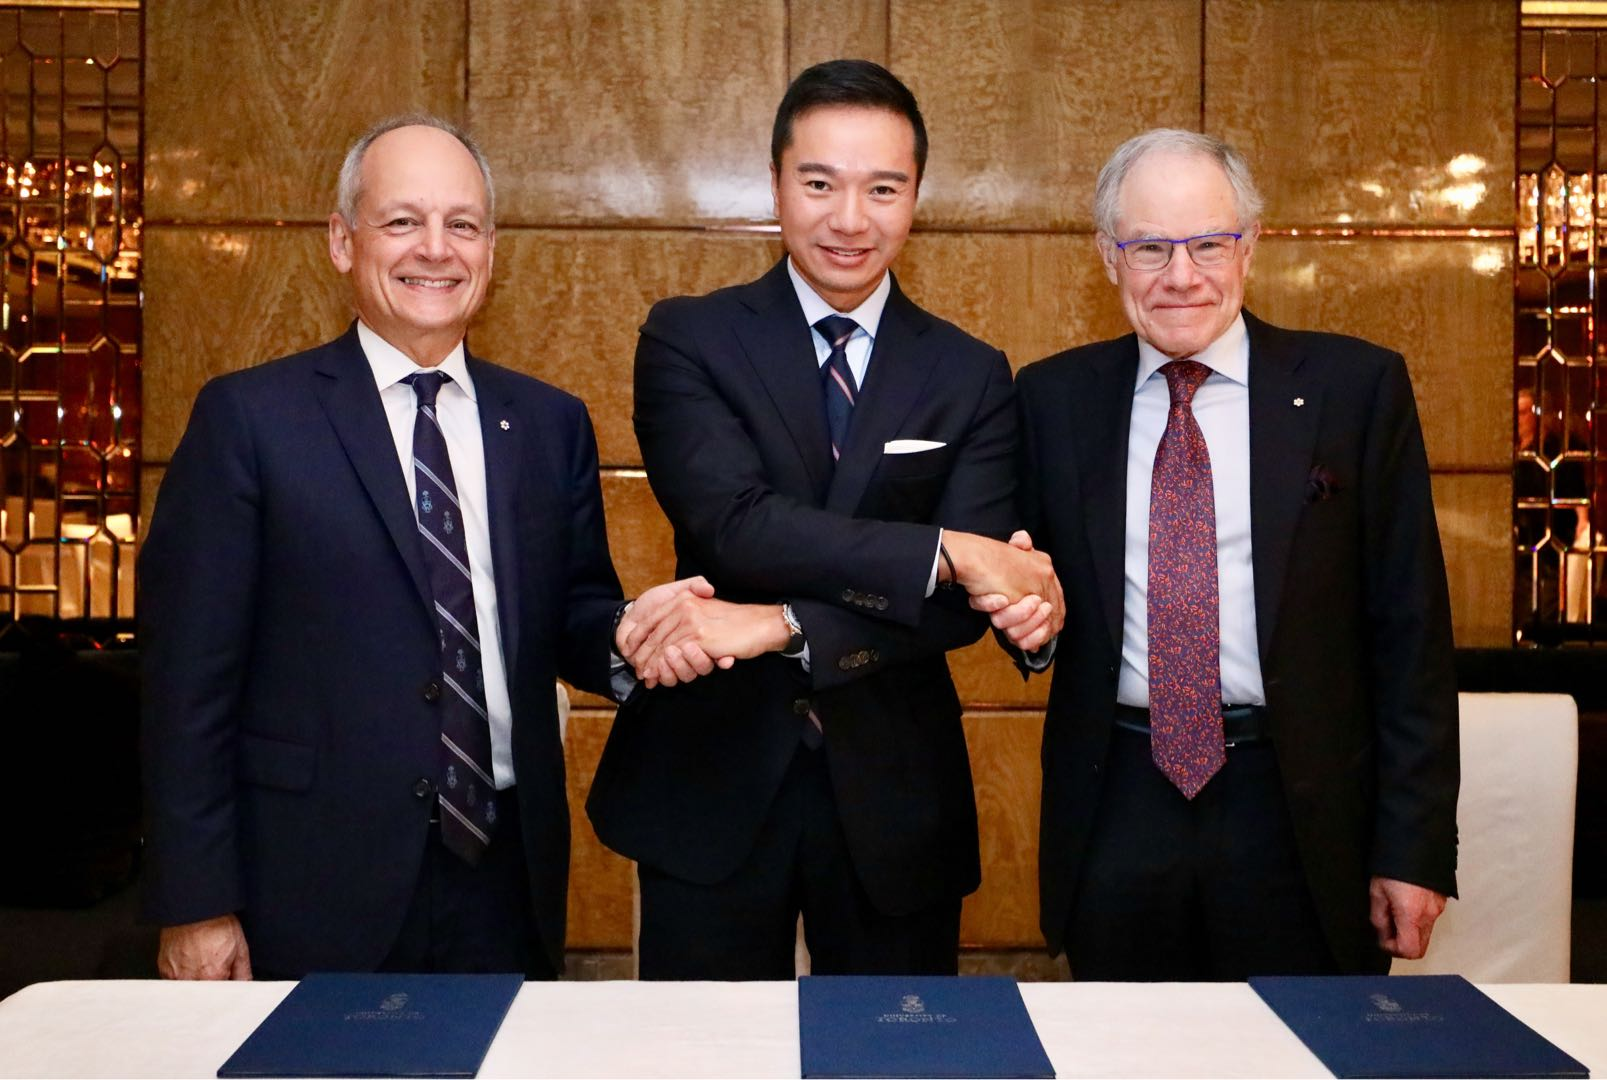 Tenniel Chu's gift establishes first sports management programme with largest ever donation to Department of Management at University of Toronto Scarborough